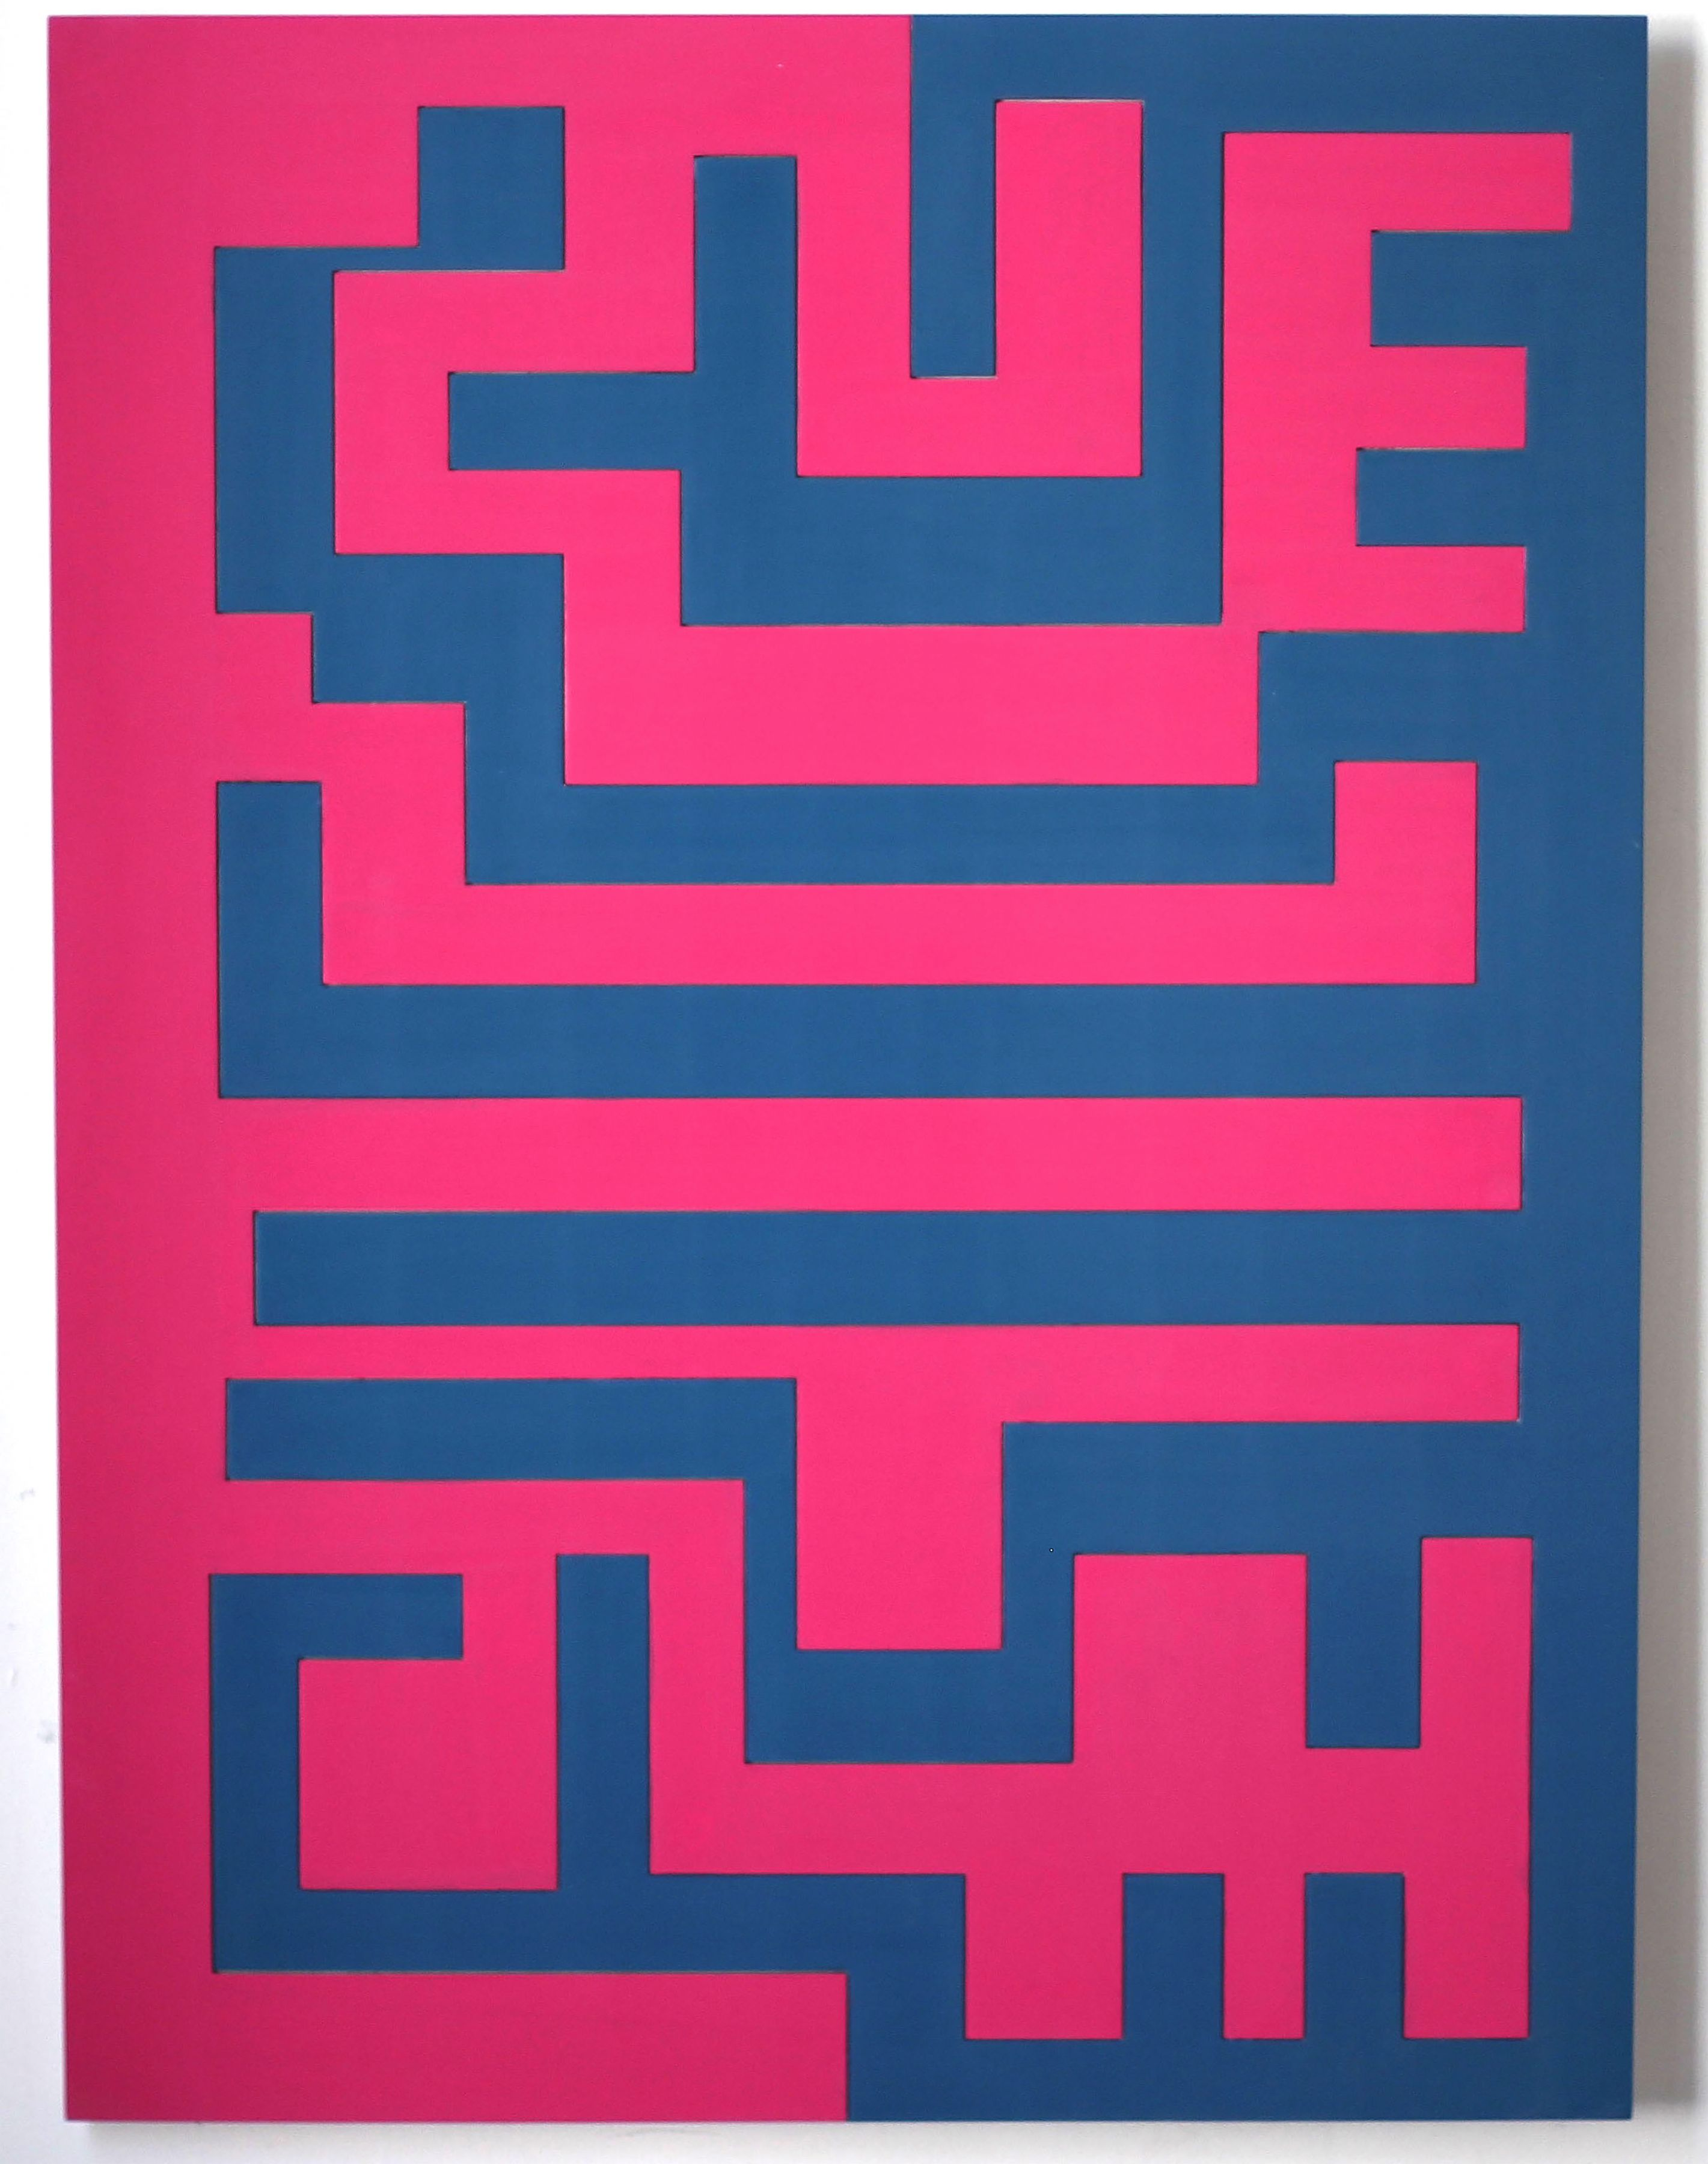 Labrys, 2018. Lacquer on MDF, 47 7/32 x 35 13/32 in. (120 x 90 cm.)